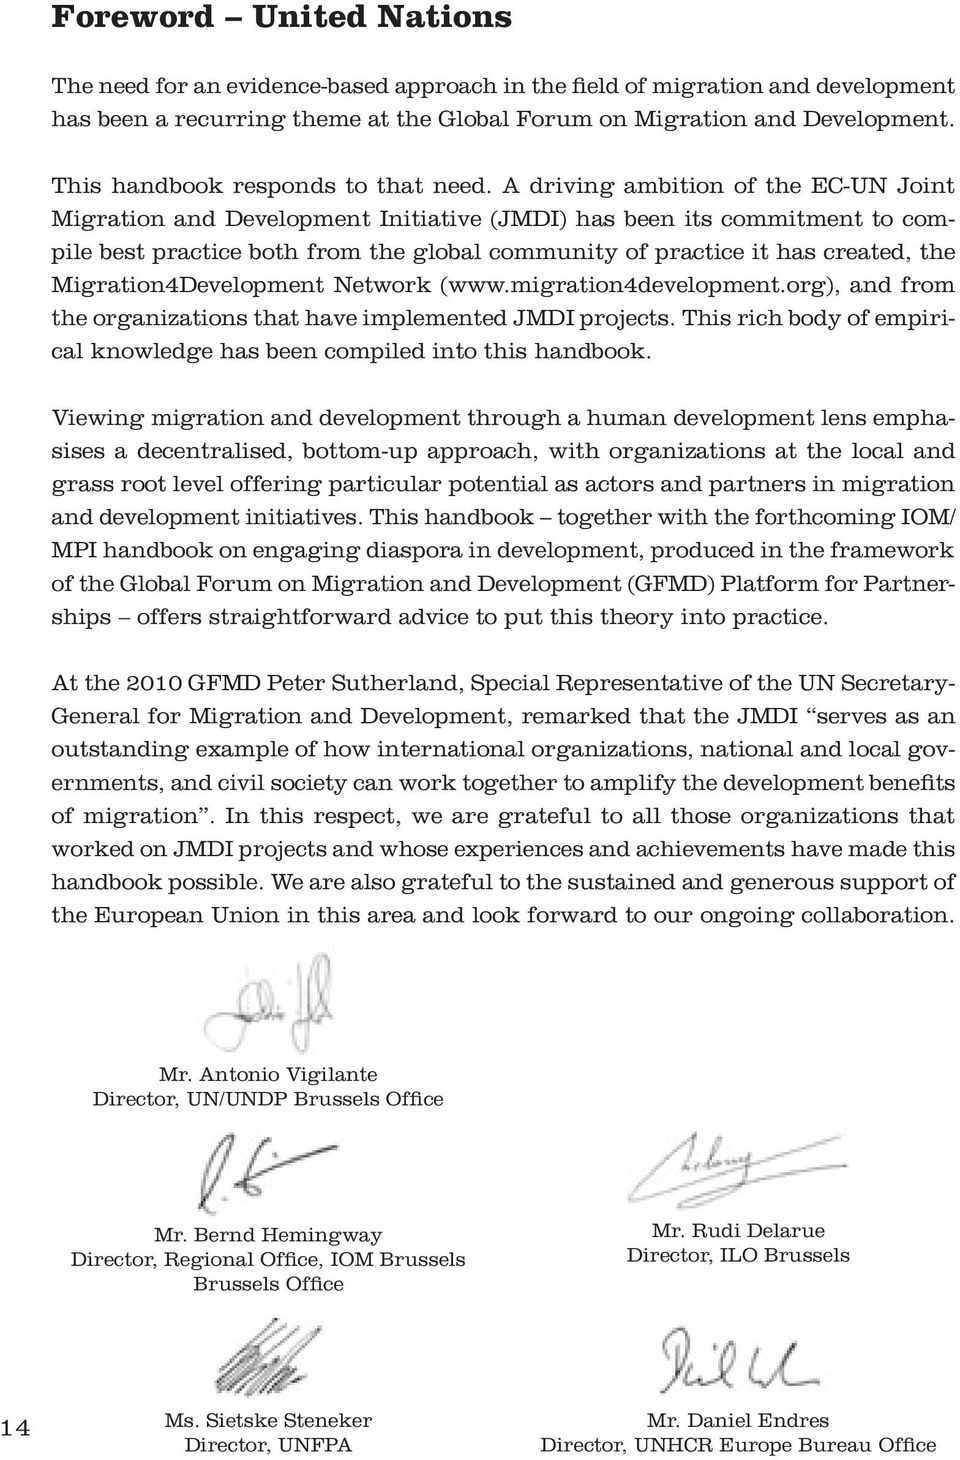 A driving ambition of the EC-UN Joint Migration and Development Initiative (JMDI) has been its commitment to compile best practice both from the global community of practice it has created, the